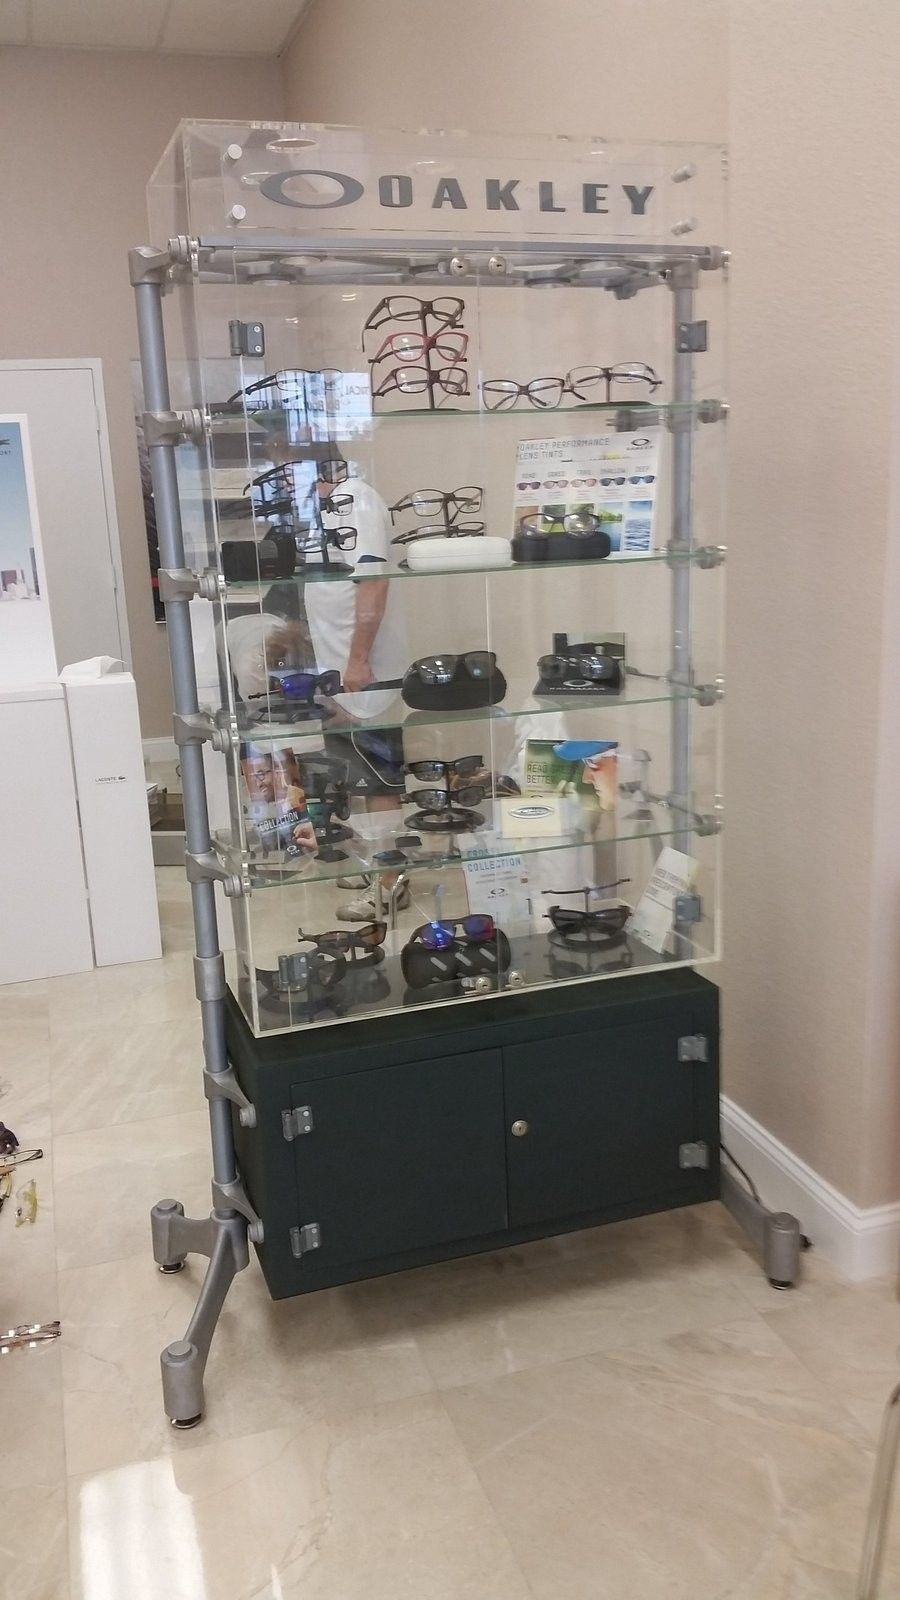 Spine Oakley Display Case - Location South Florida - 20151031_130155.jpg